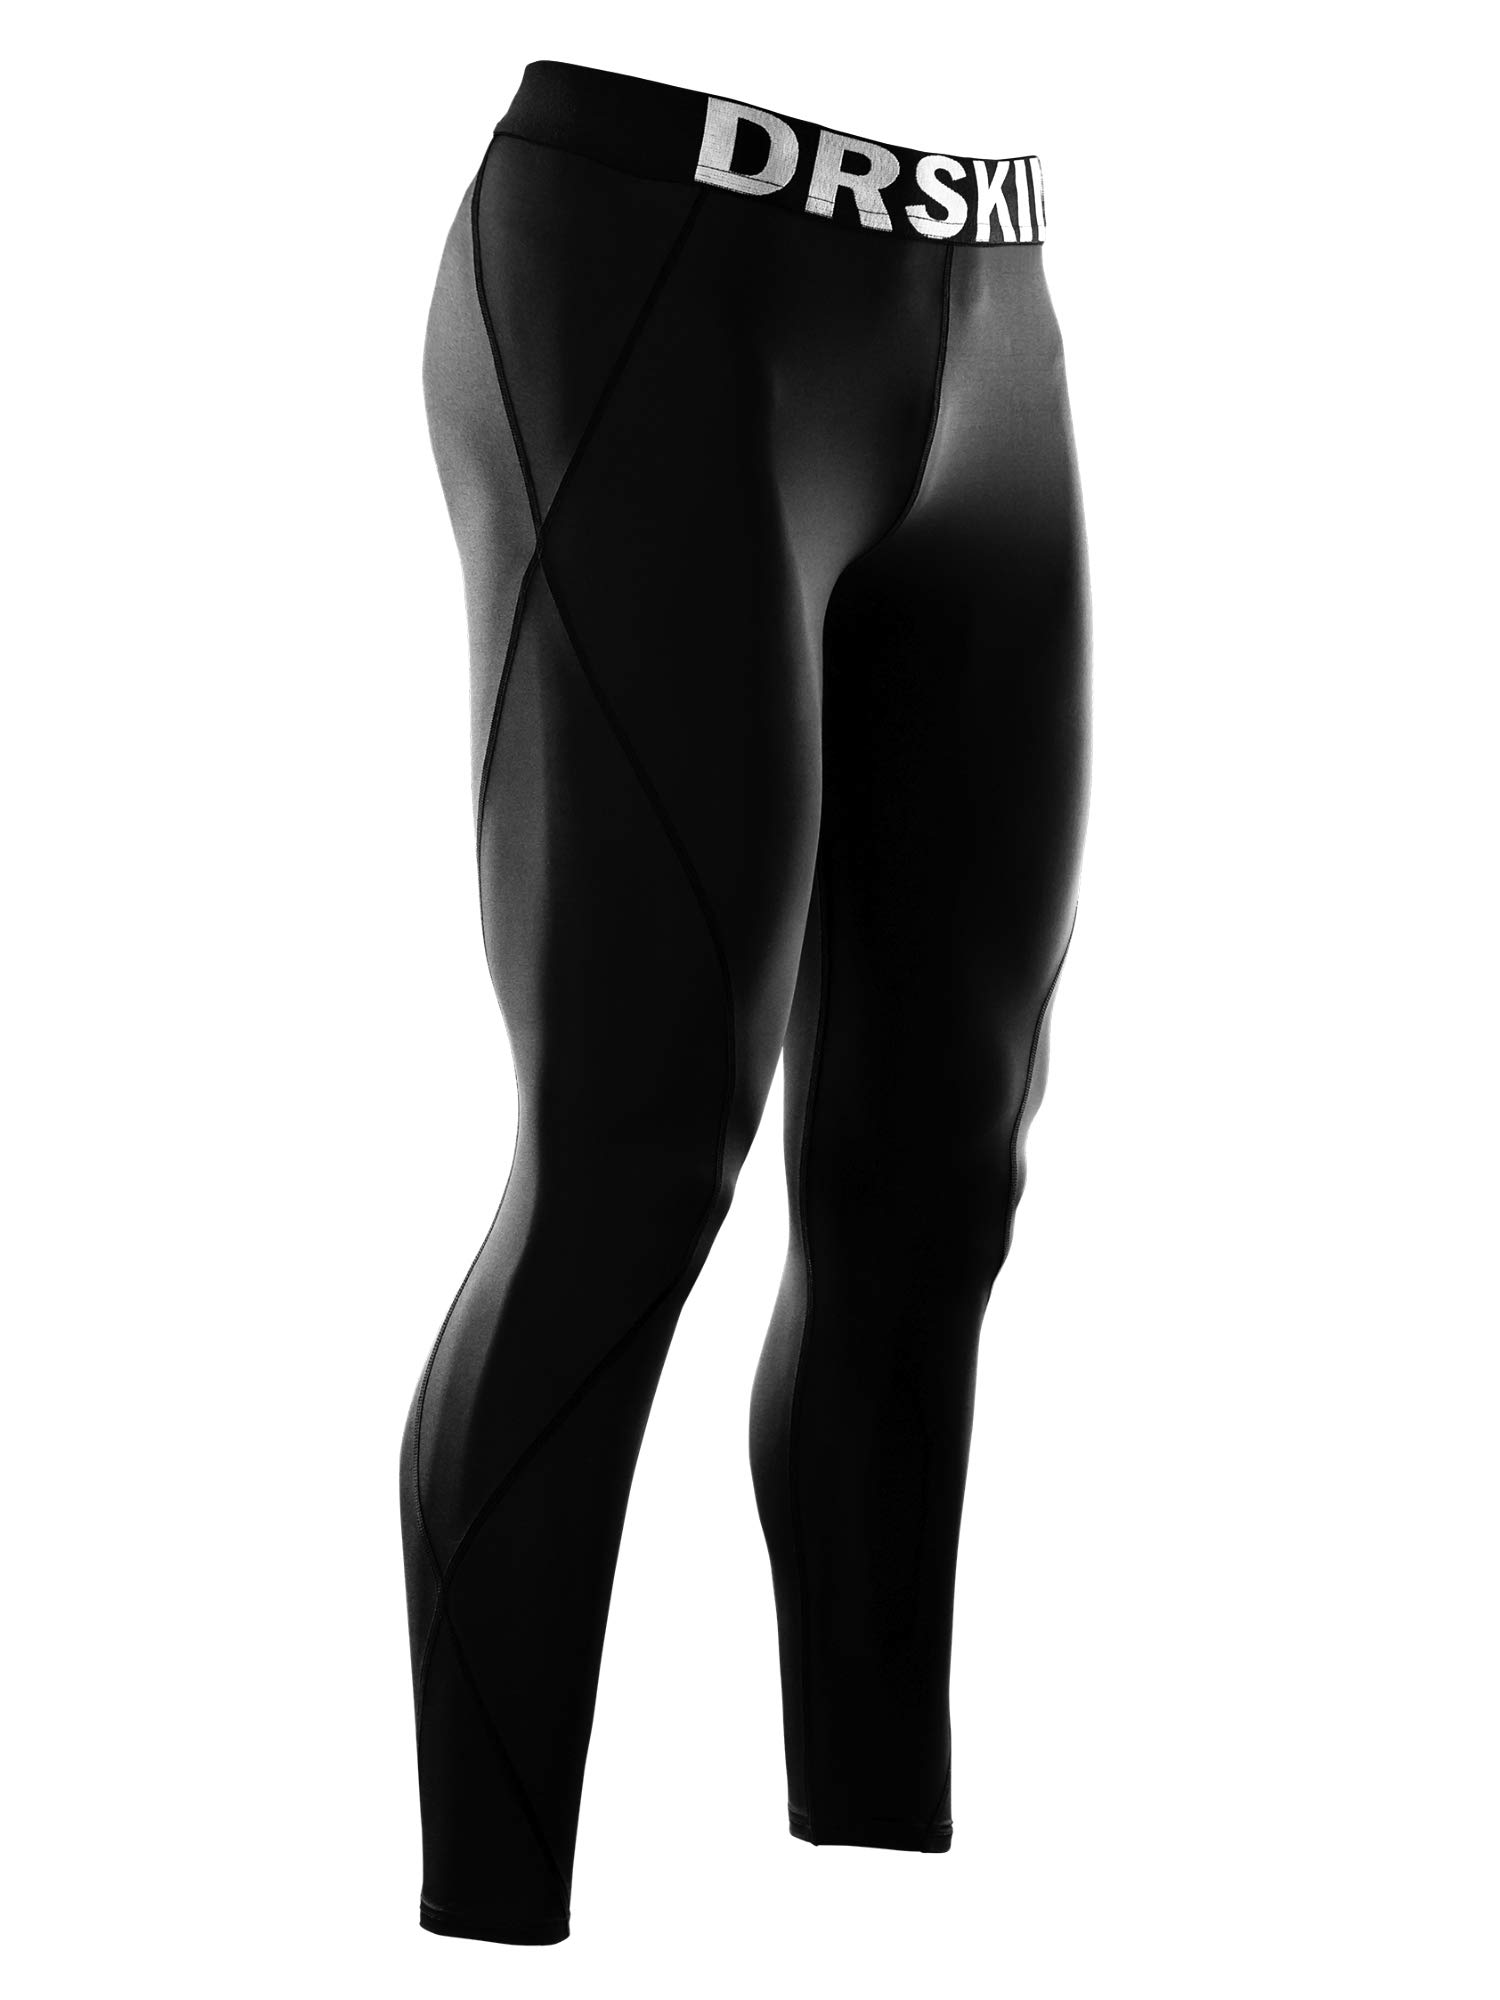 474fe6cce DRSKIN Men's Compression Warm Dry Cool Sports Tights Pants Baselayer Running  Leggings Yoga product image